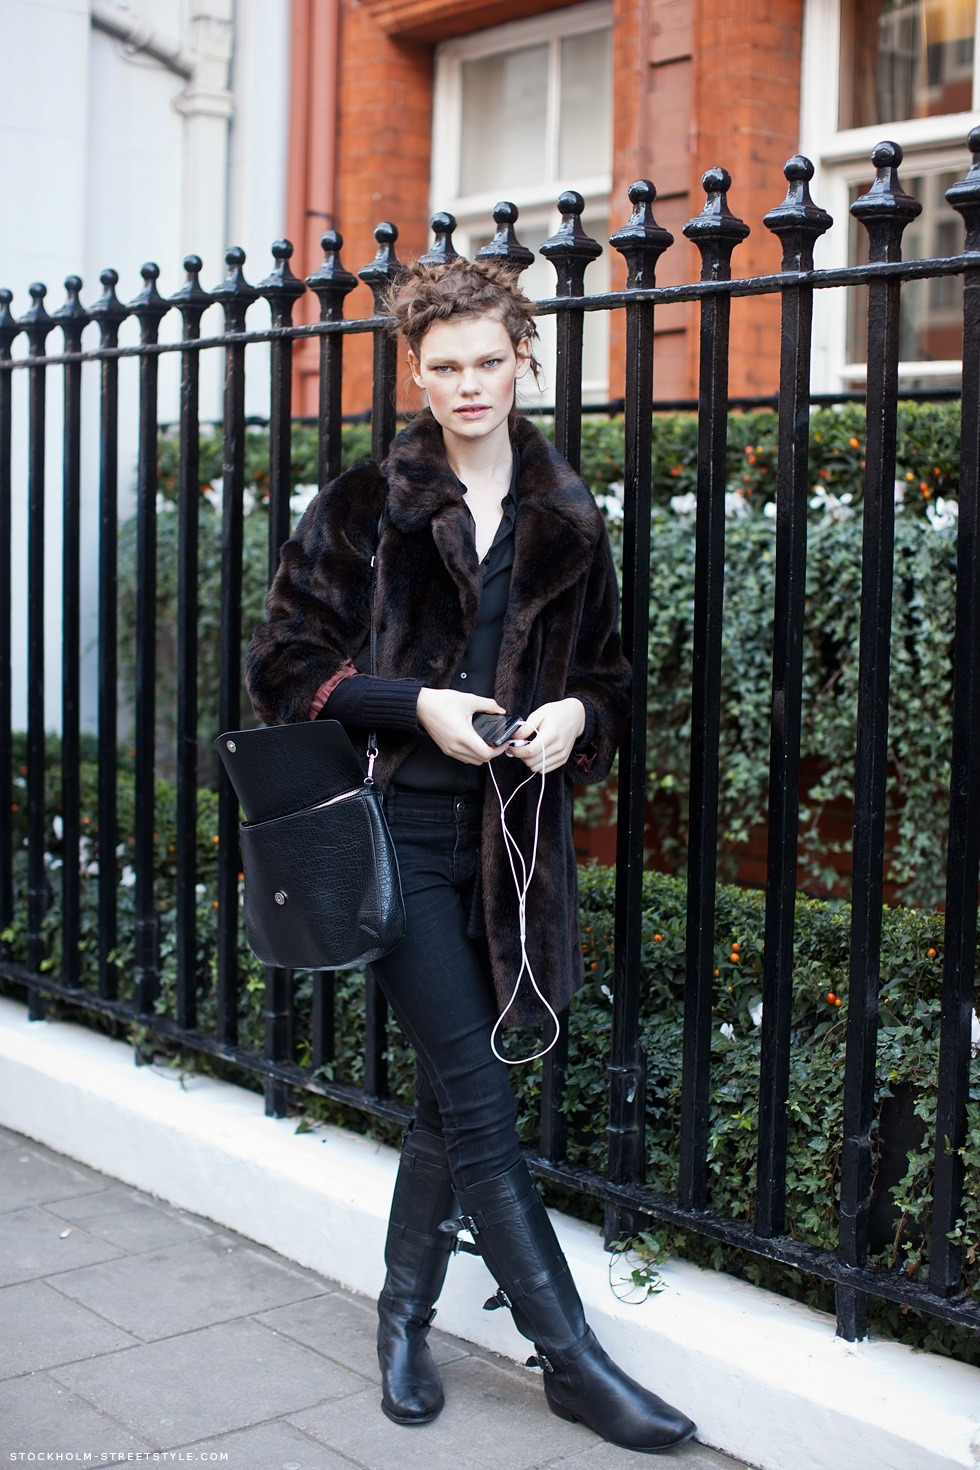 Streetstyle in Zara and vintage after Mulberry in London